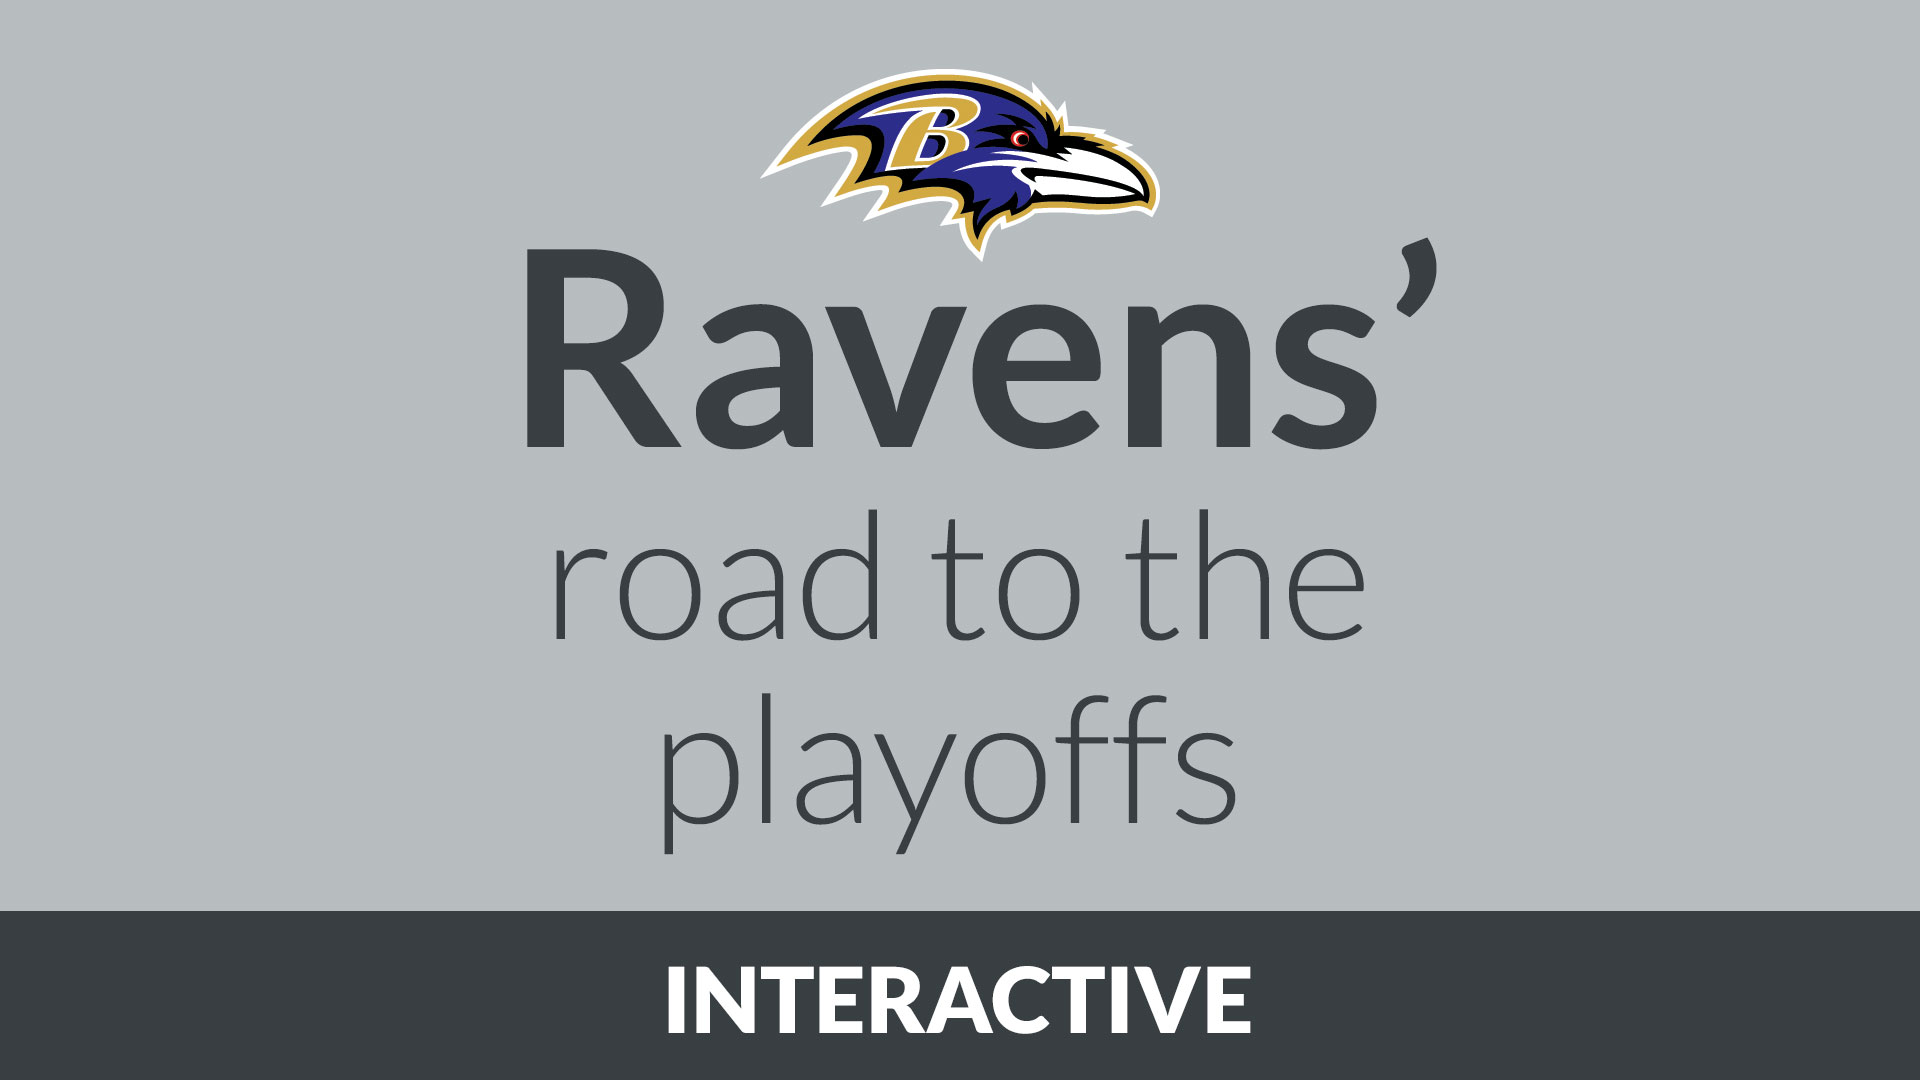 The Ravens' Road to the Playoffs